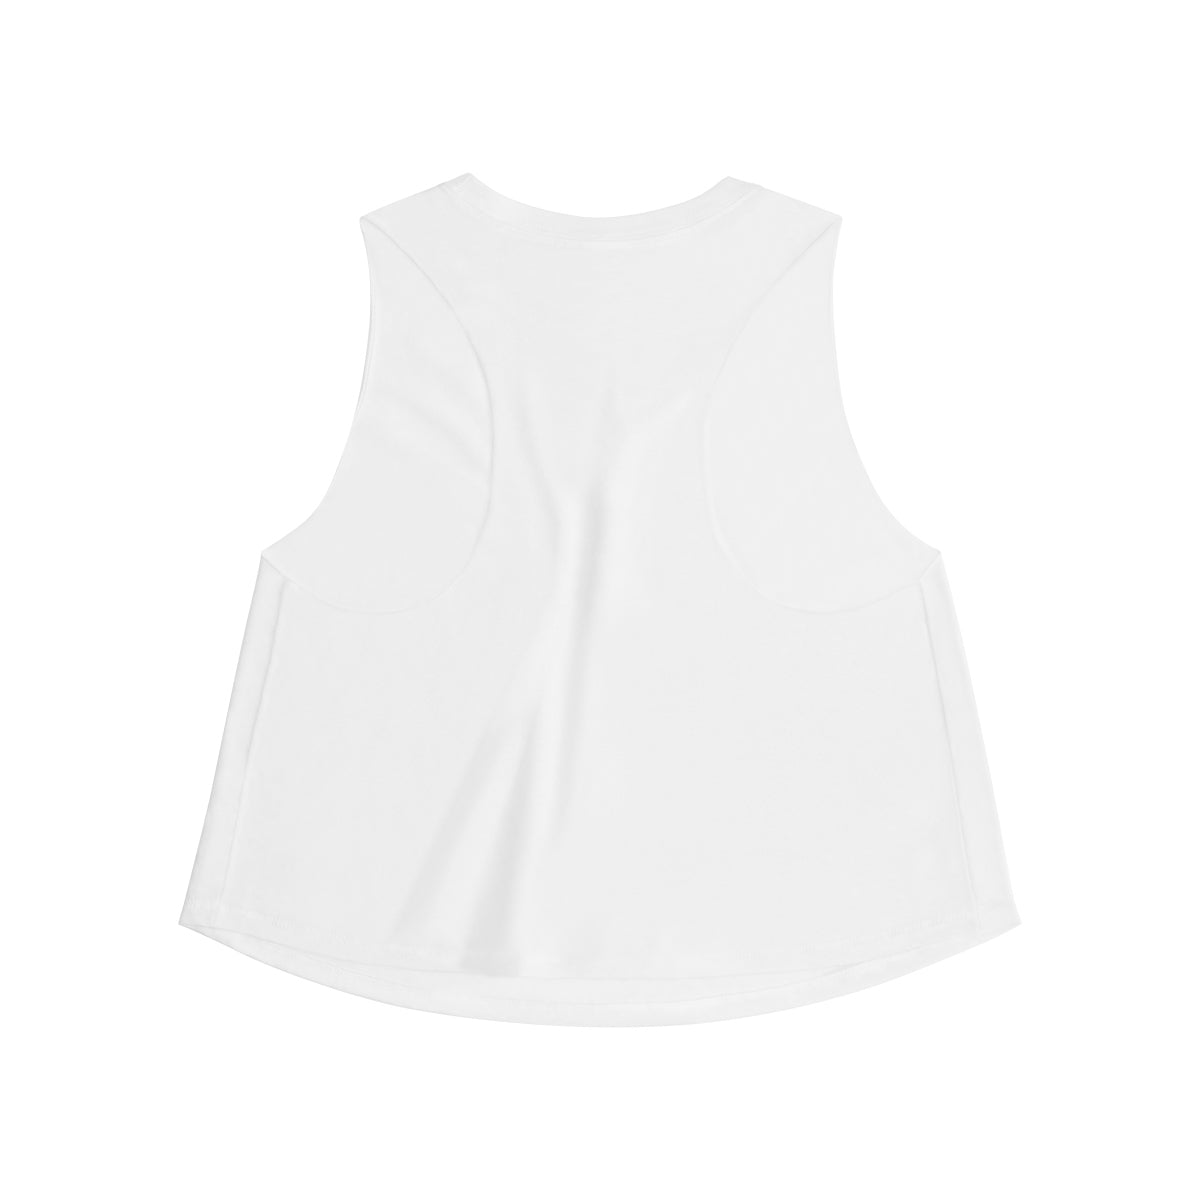 You're Pearfect Women's Crop Top